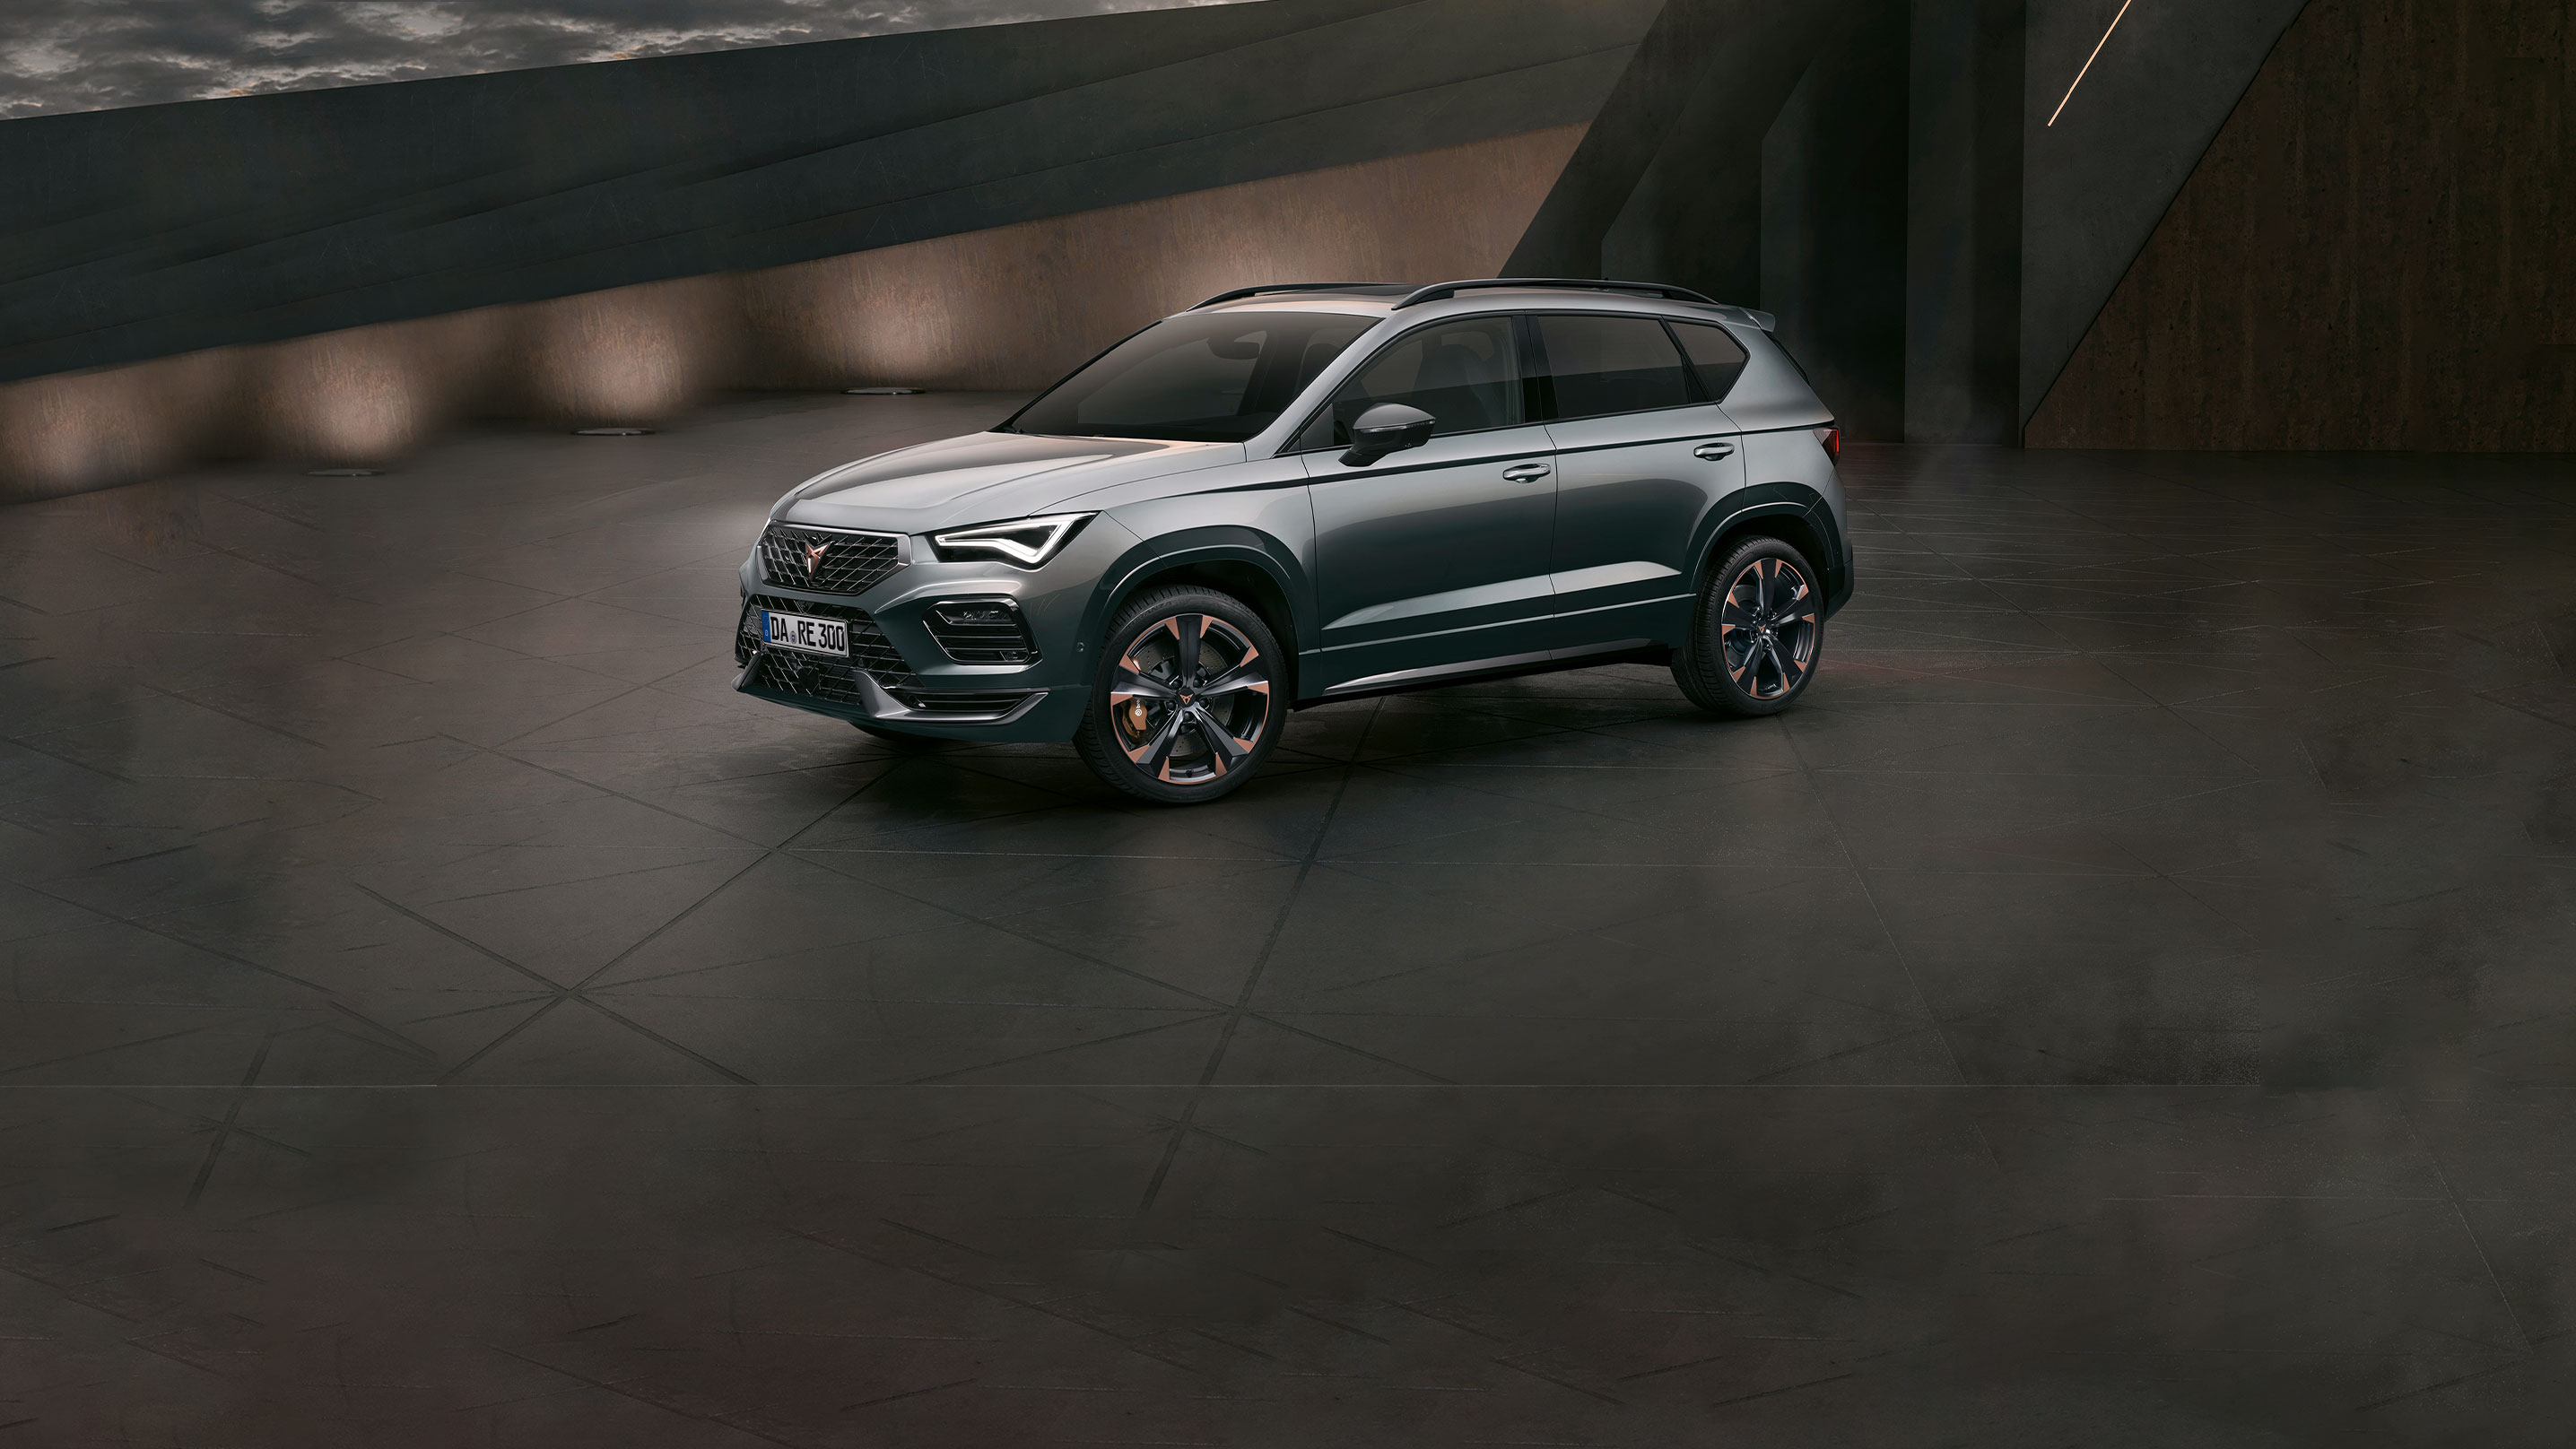 cupra-ateca-2020-engine-300-hp-rodium-grey-colour